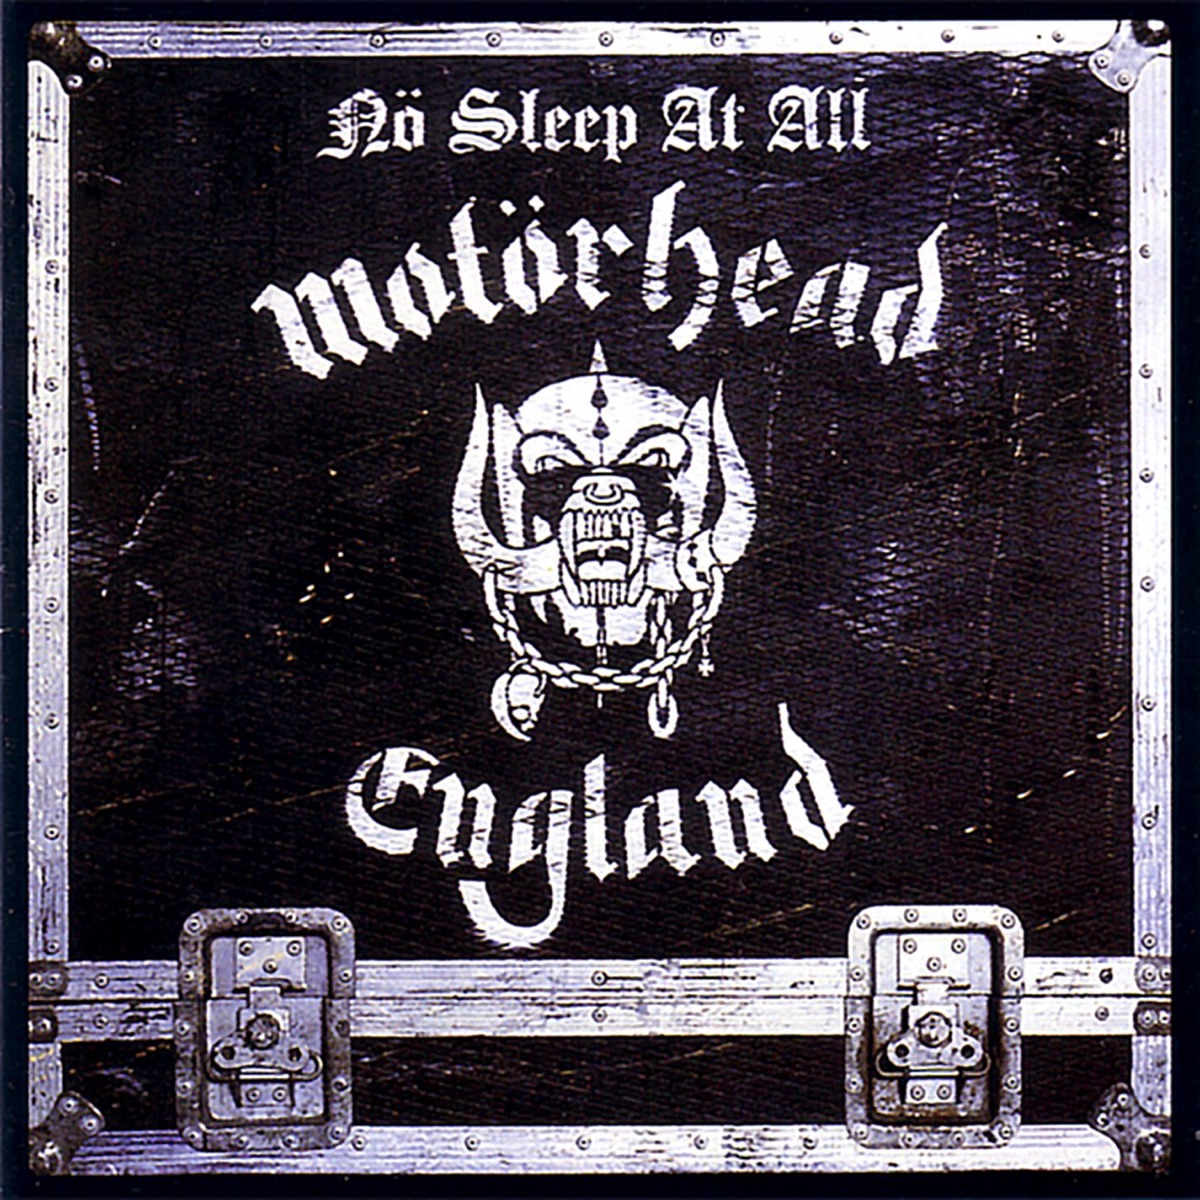 No Sleep At All Album Cover by Motörhead